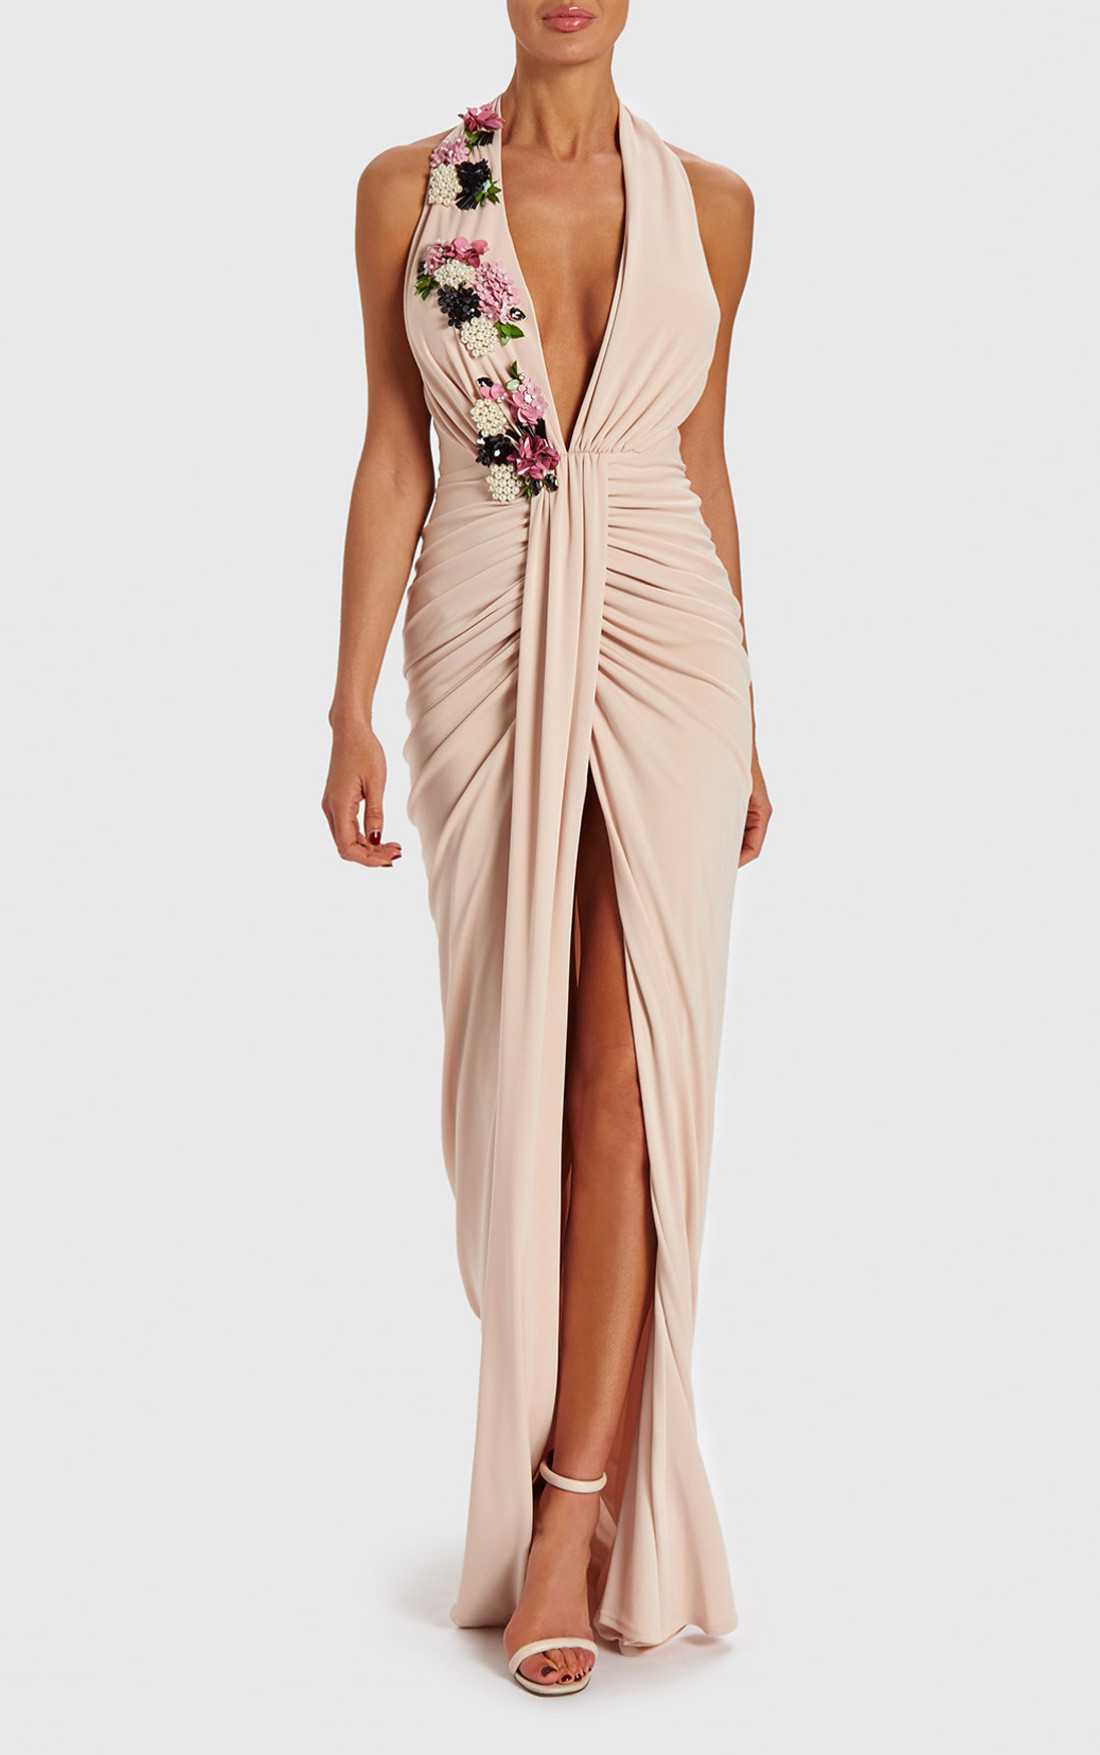 6c25853704e5 Forever Unique - Lianne Soft Pink Ruched Maxi Dress With 3D Flower  Embellishments (AB8507) ...